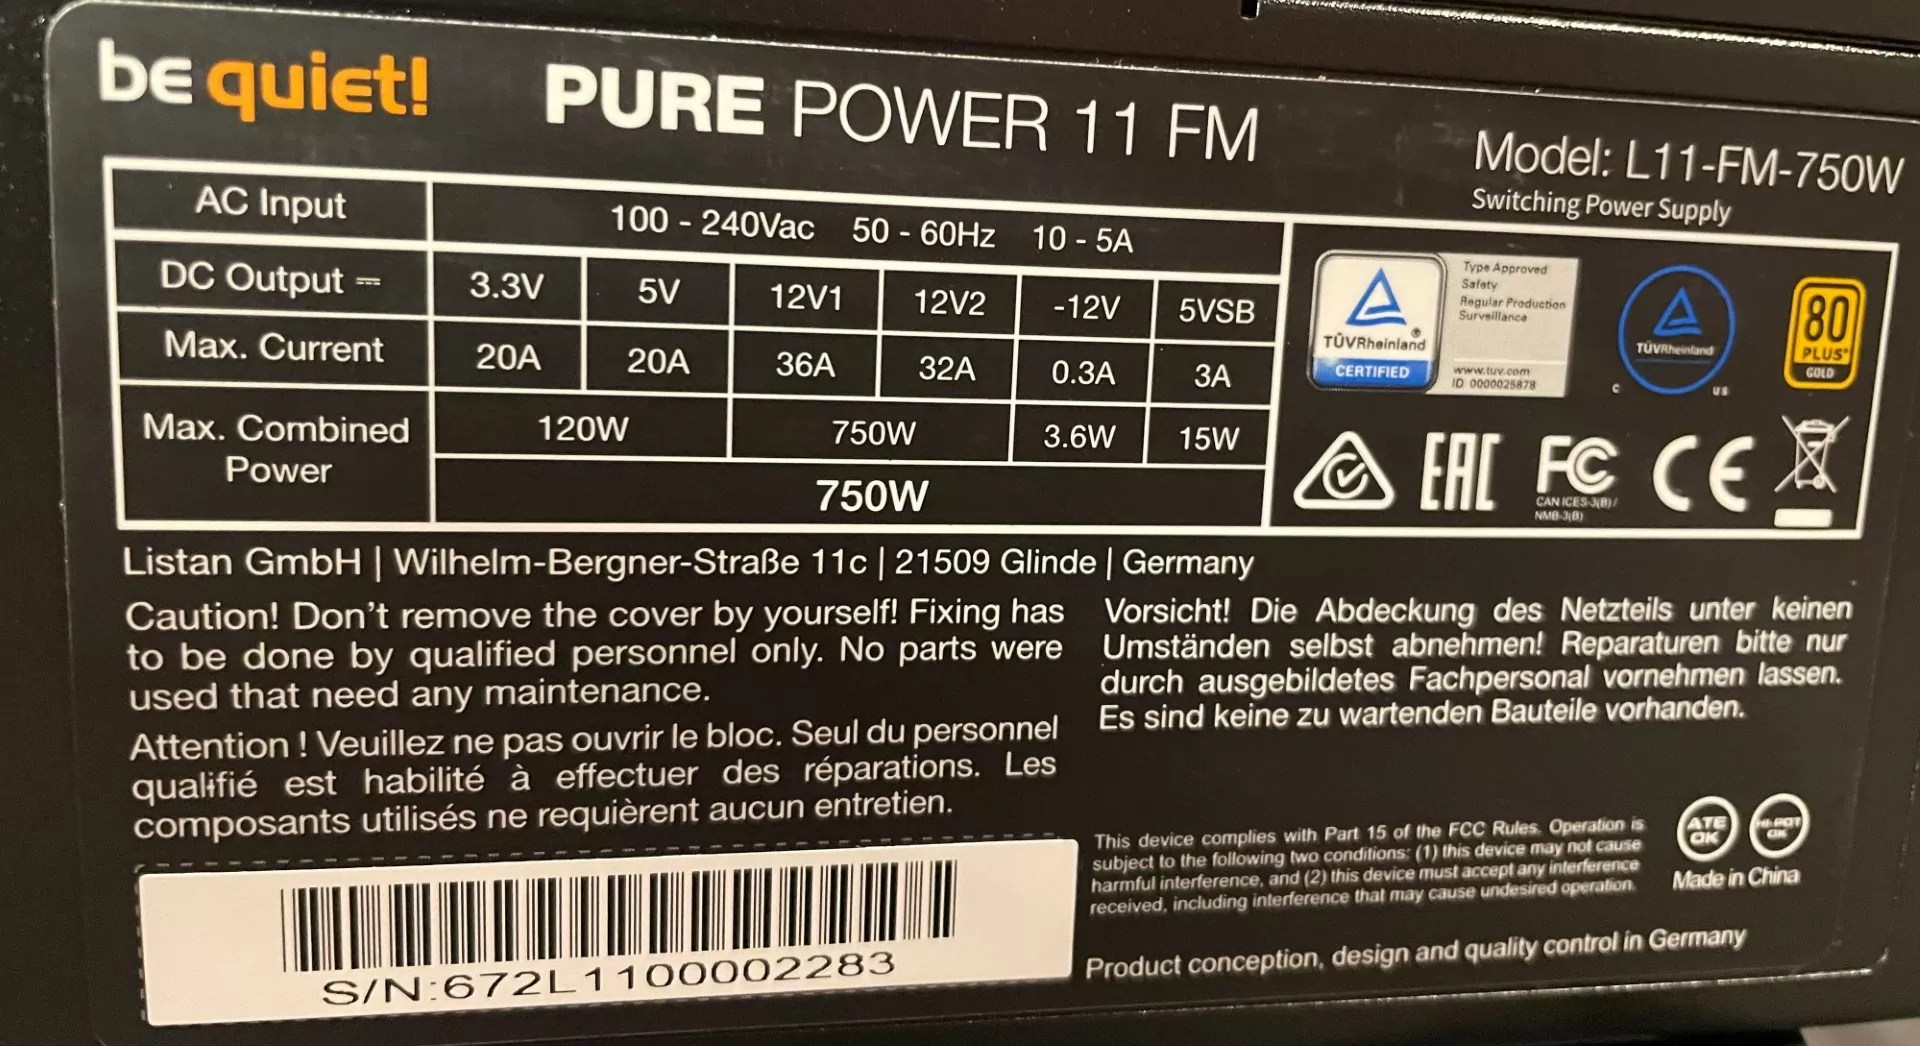 Specifications be quiet PURE POWER 11 FM 750W Review - Newb Computer Build